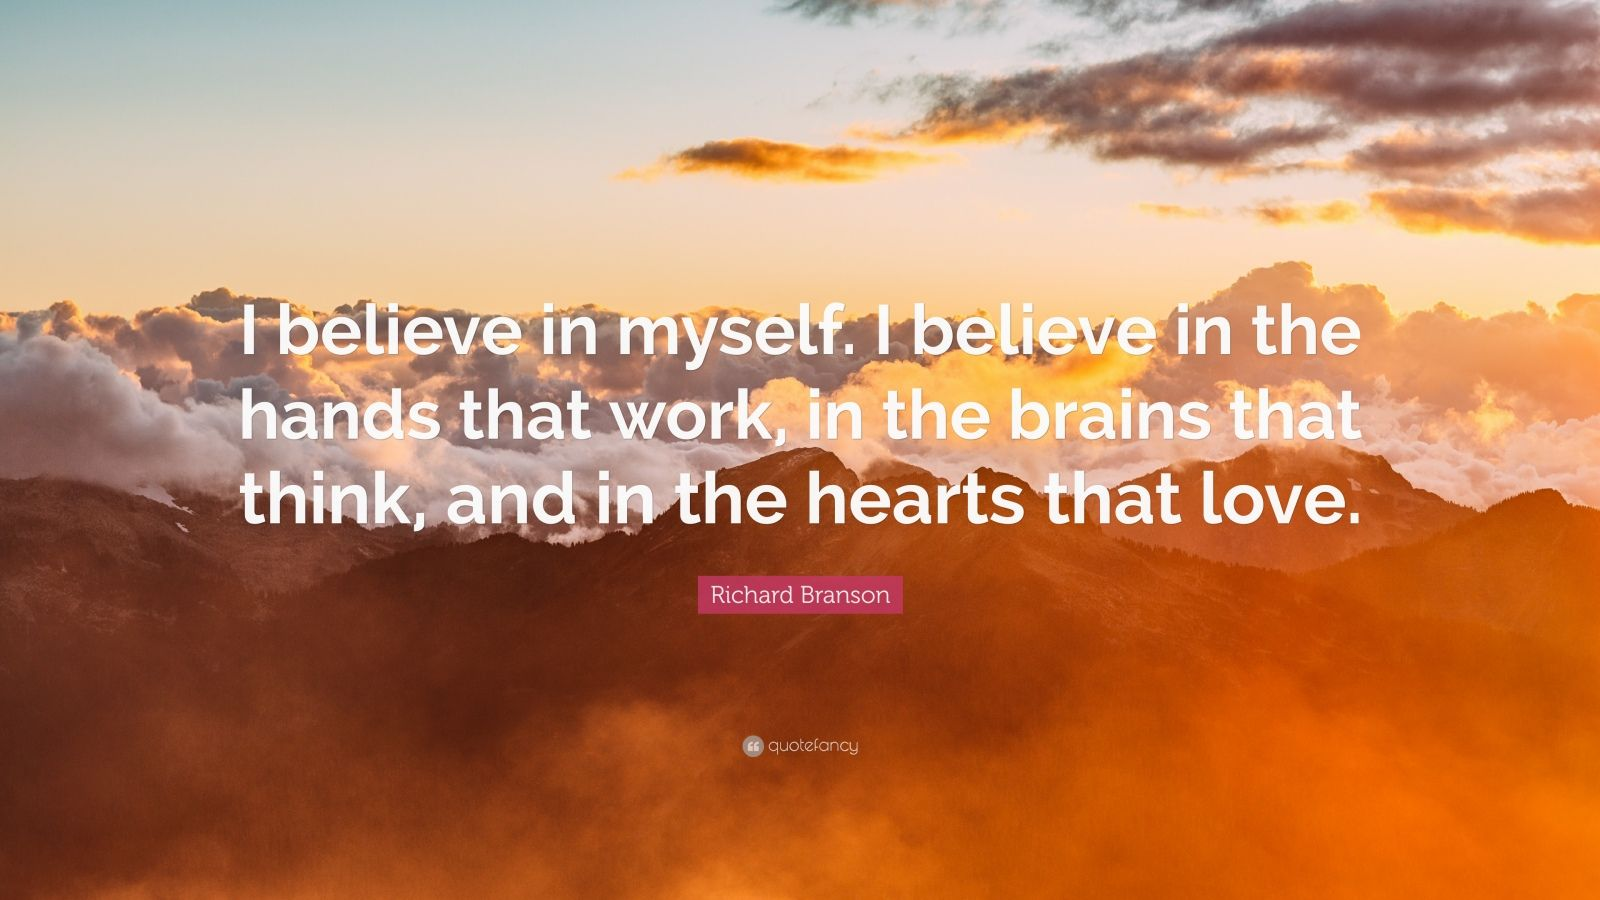 """Richard Branson Quote: """"I believe in myself. I believe in the hands that work, in the brains that think, and in the hearts that love."""""""